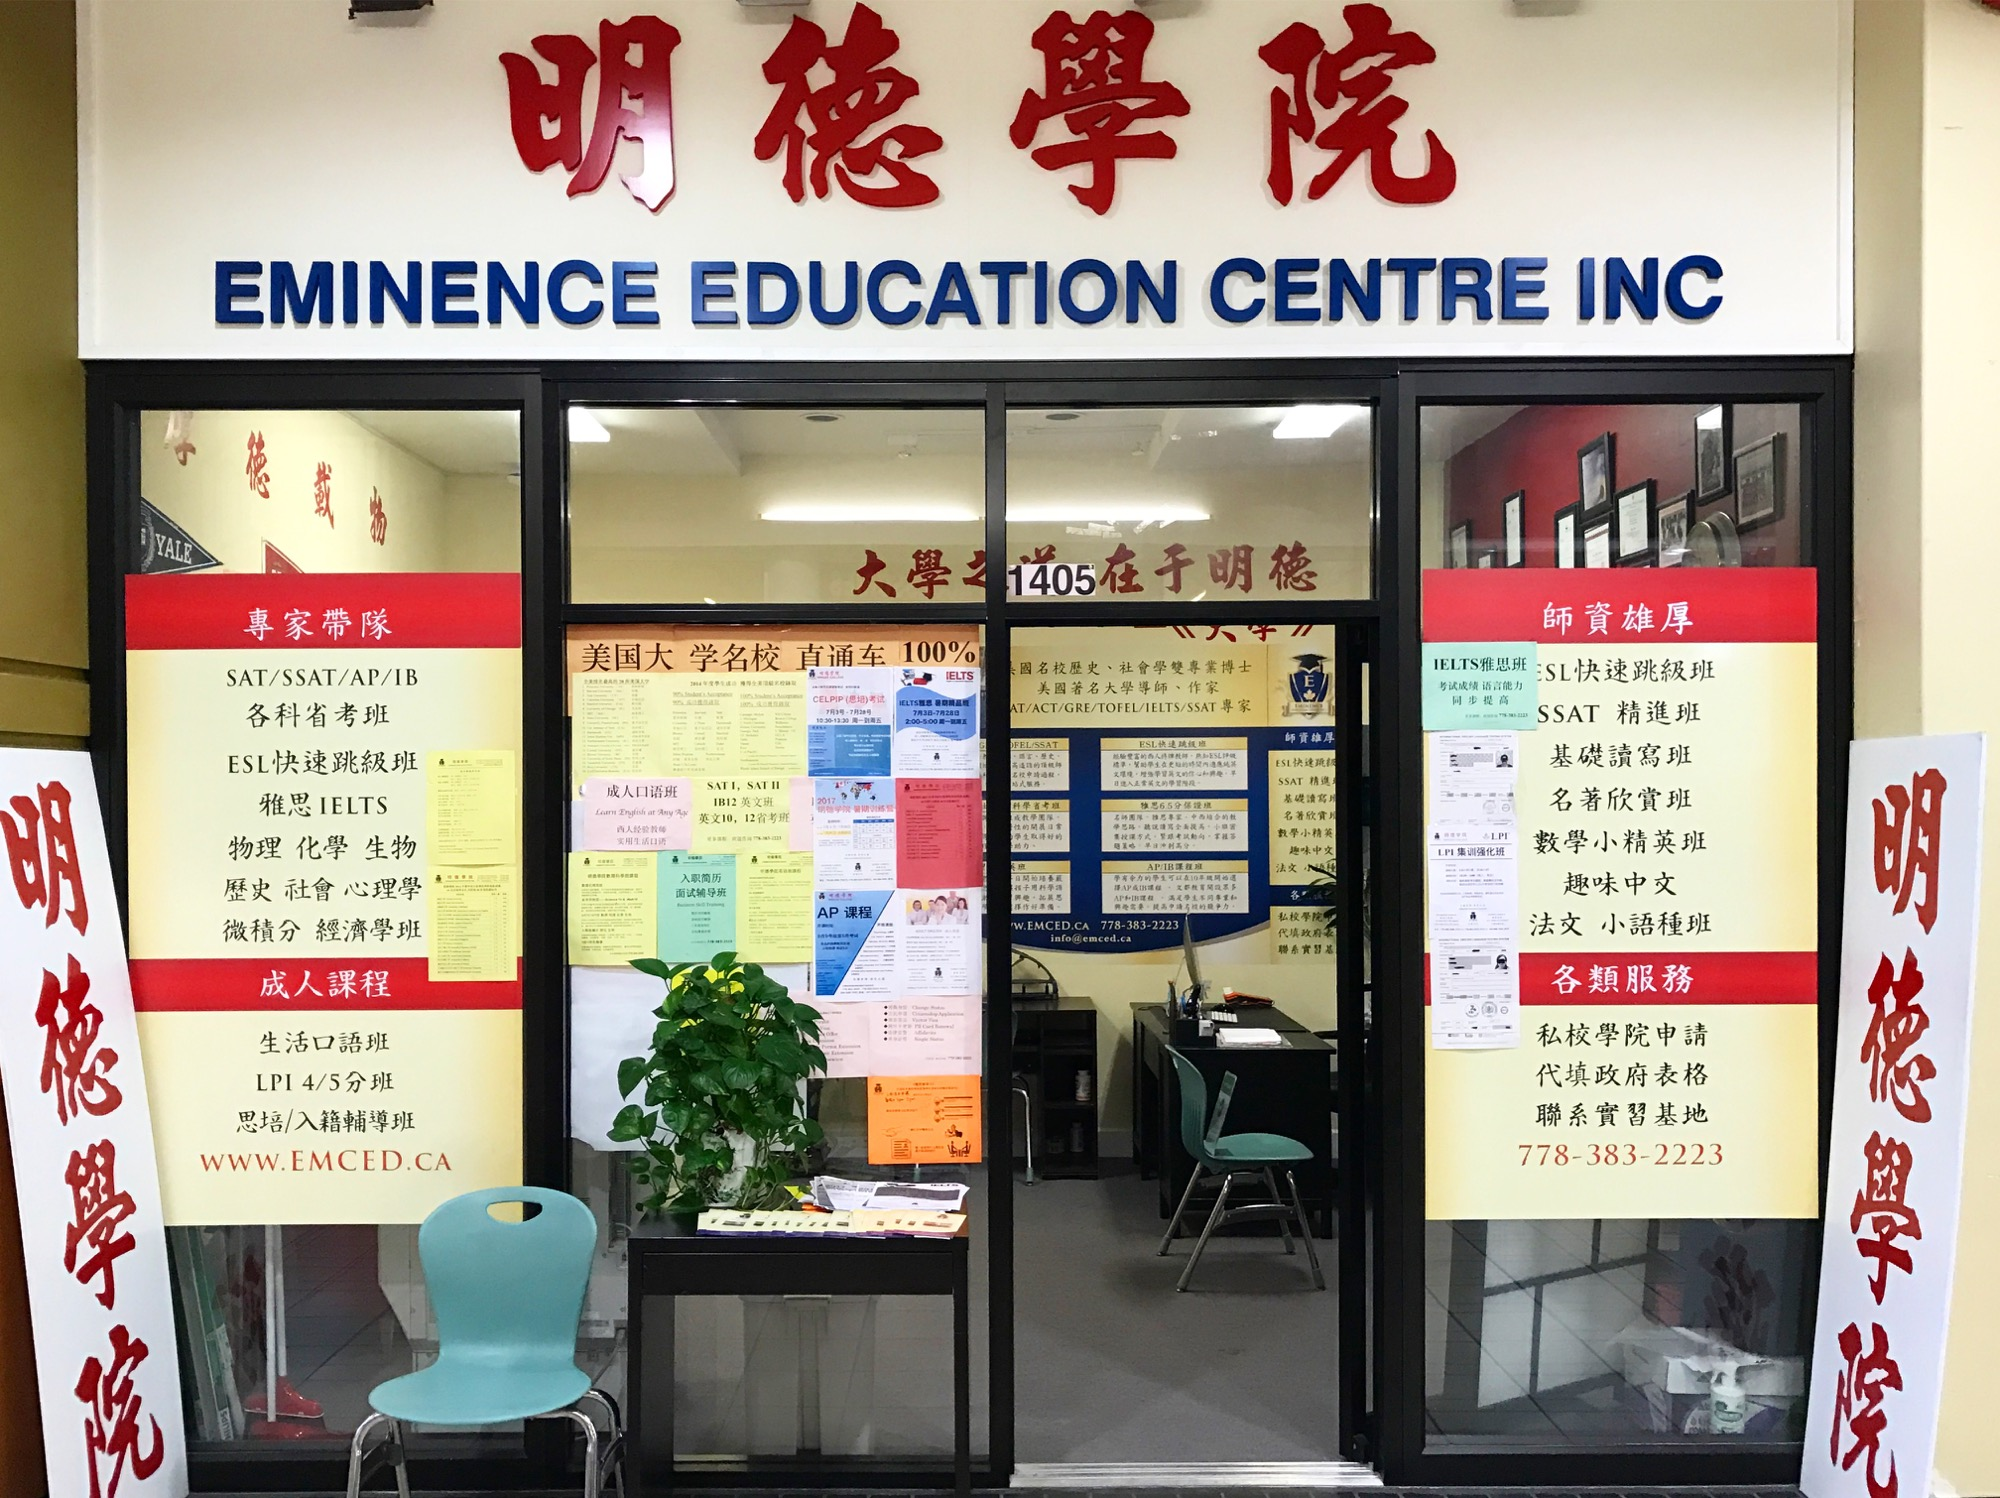 EminenceEducationCentre Unit1405